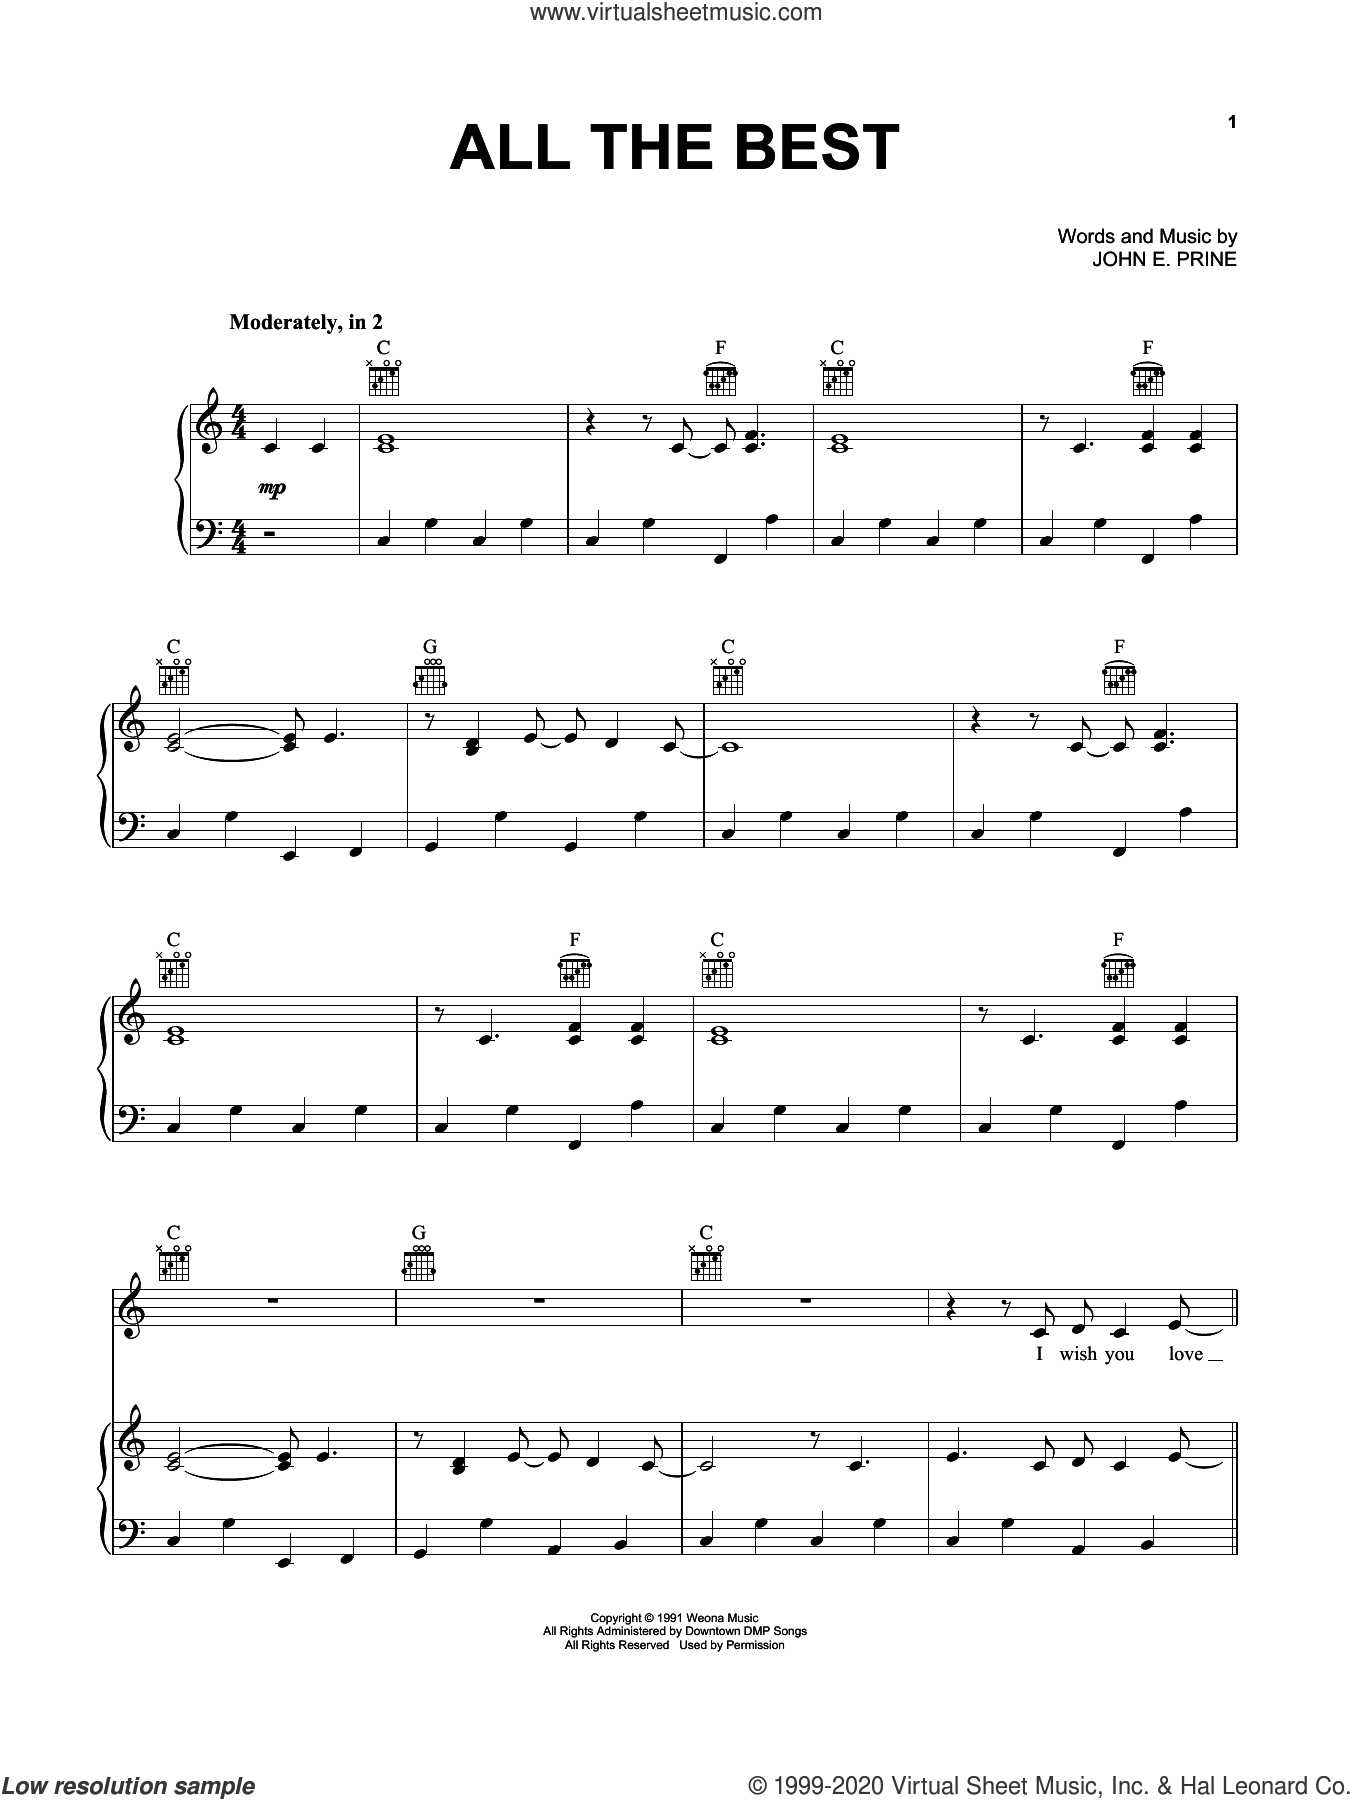 All The Best sheet music for voice, piano or guitar by John Prine and John E. Prine, intermediate skill level